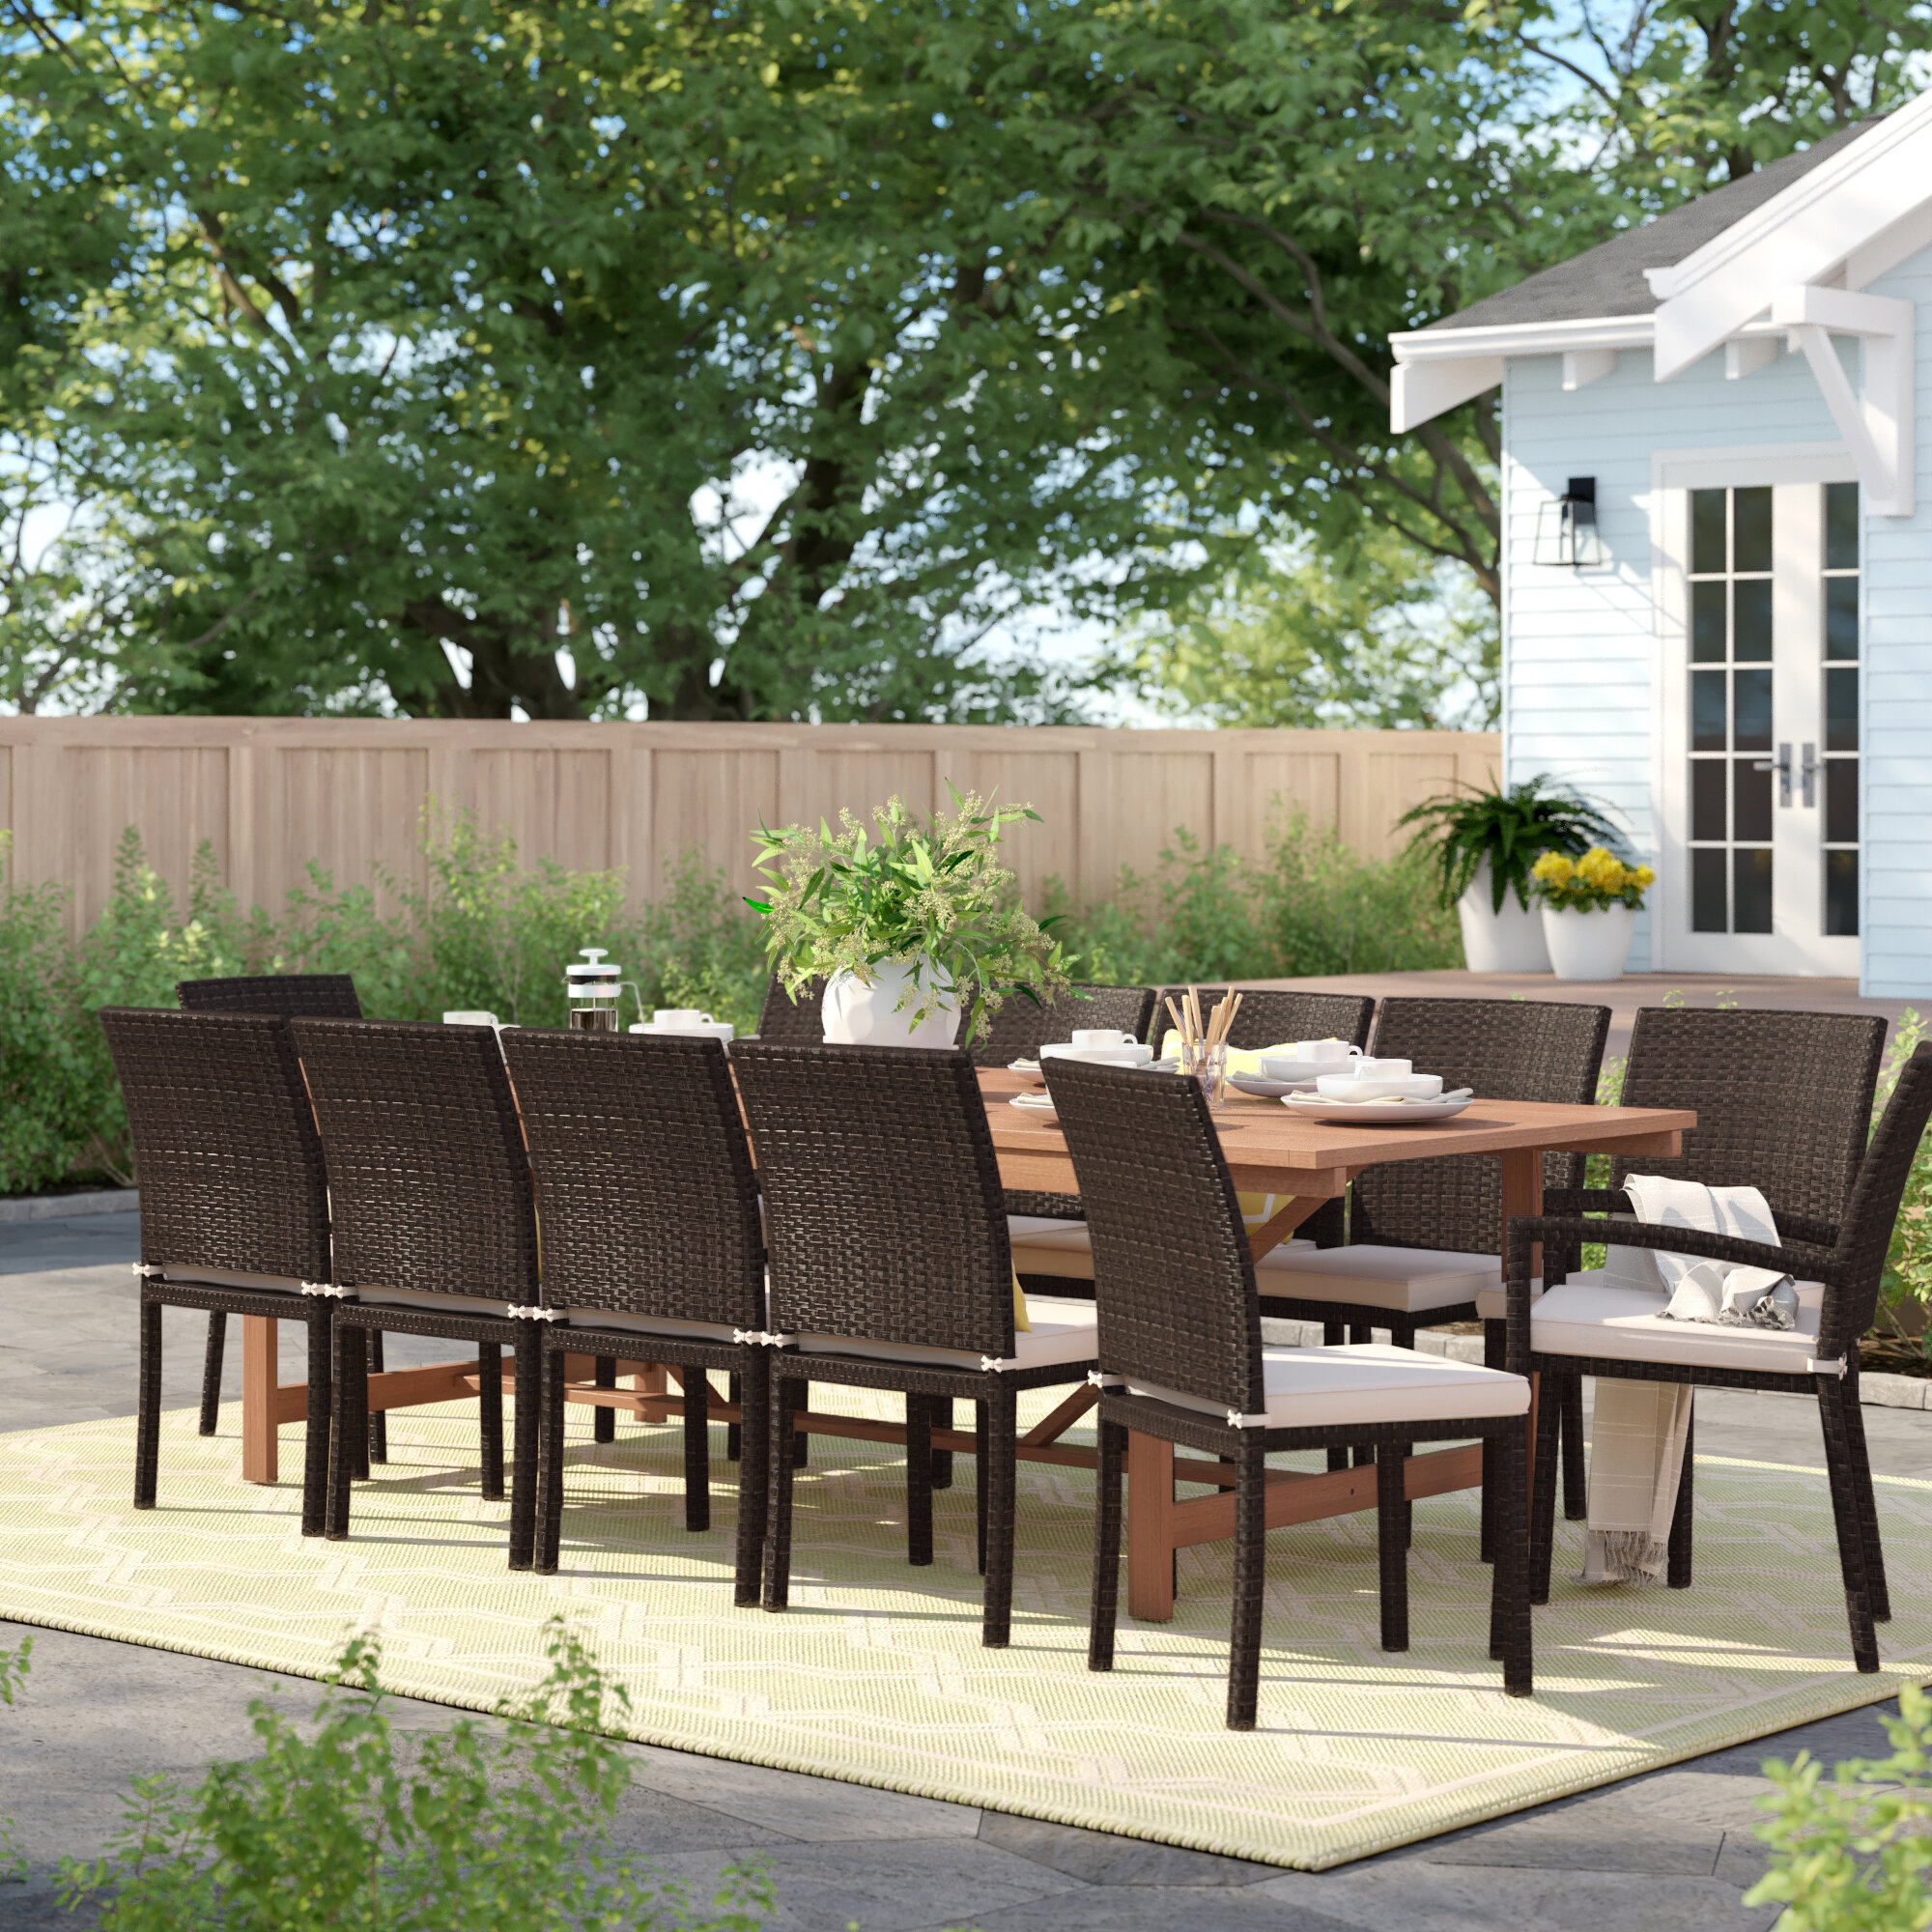 Rustic Patio Dining Sets You Ll Love In 2021 Wayfair